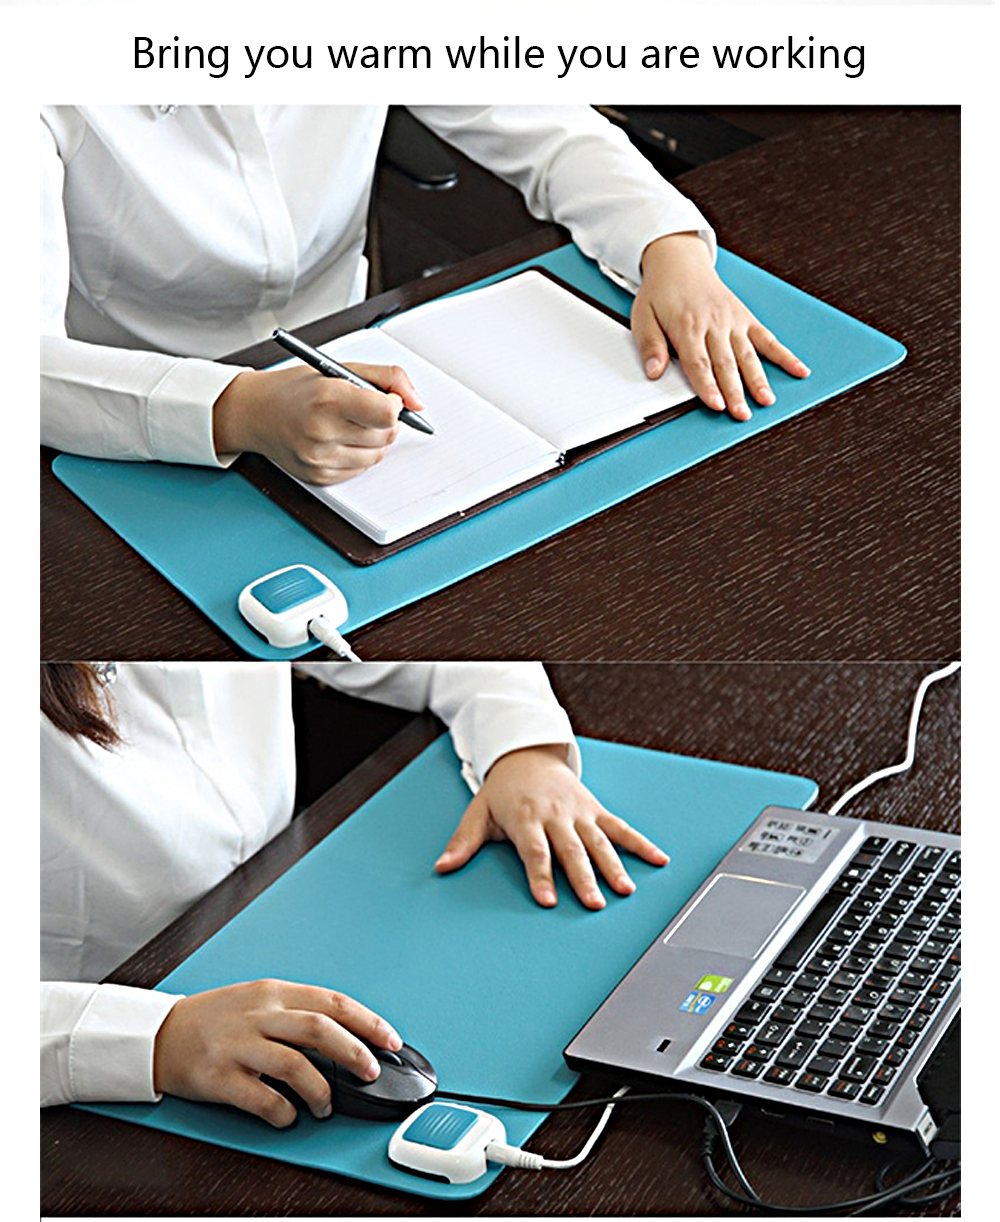 Deli 3690 Electric Heated Pad Mat 540 x 280mm for Home Office